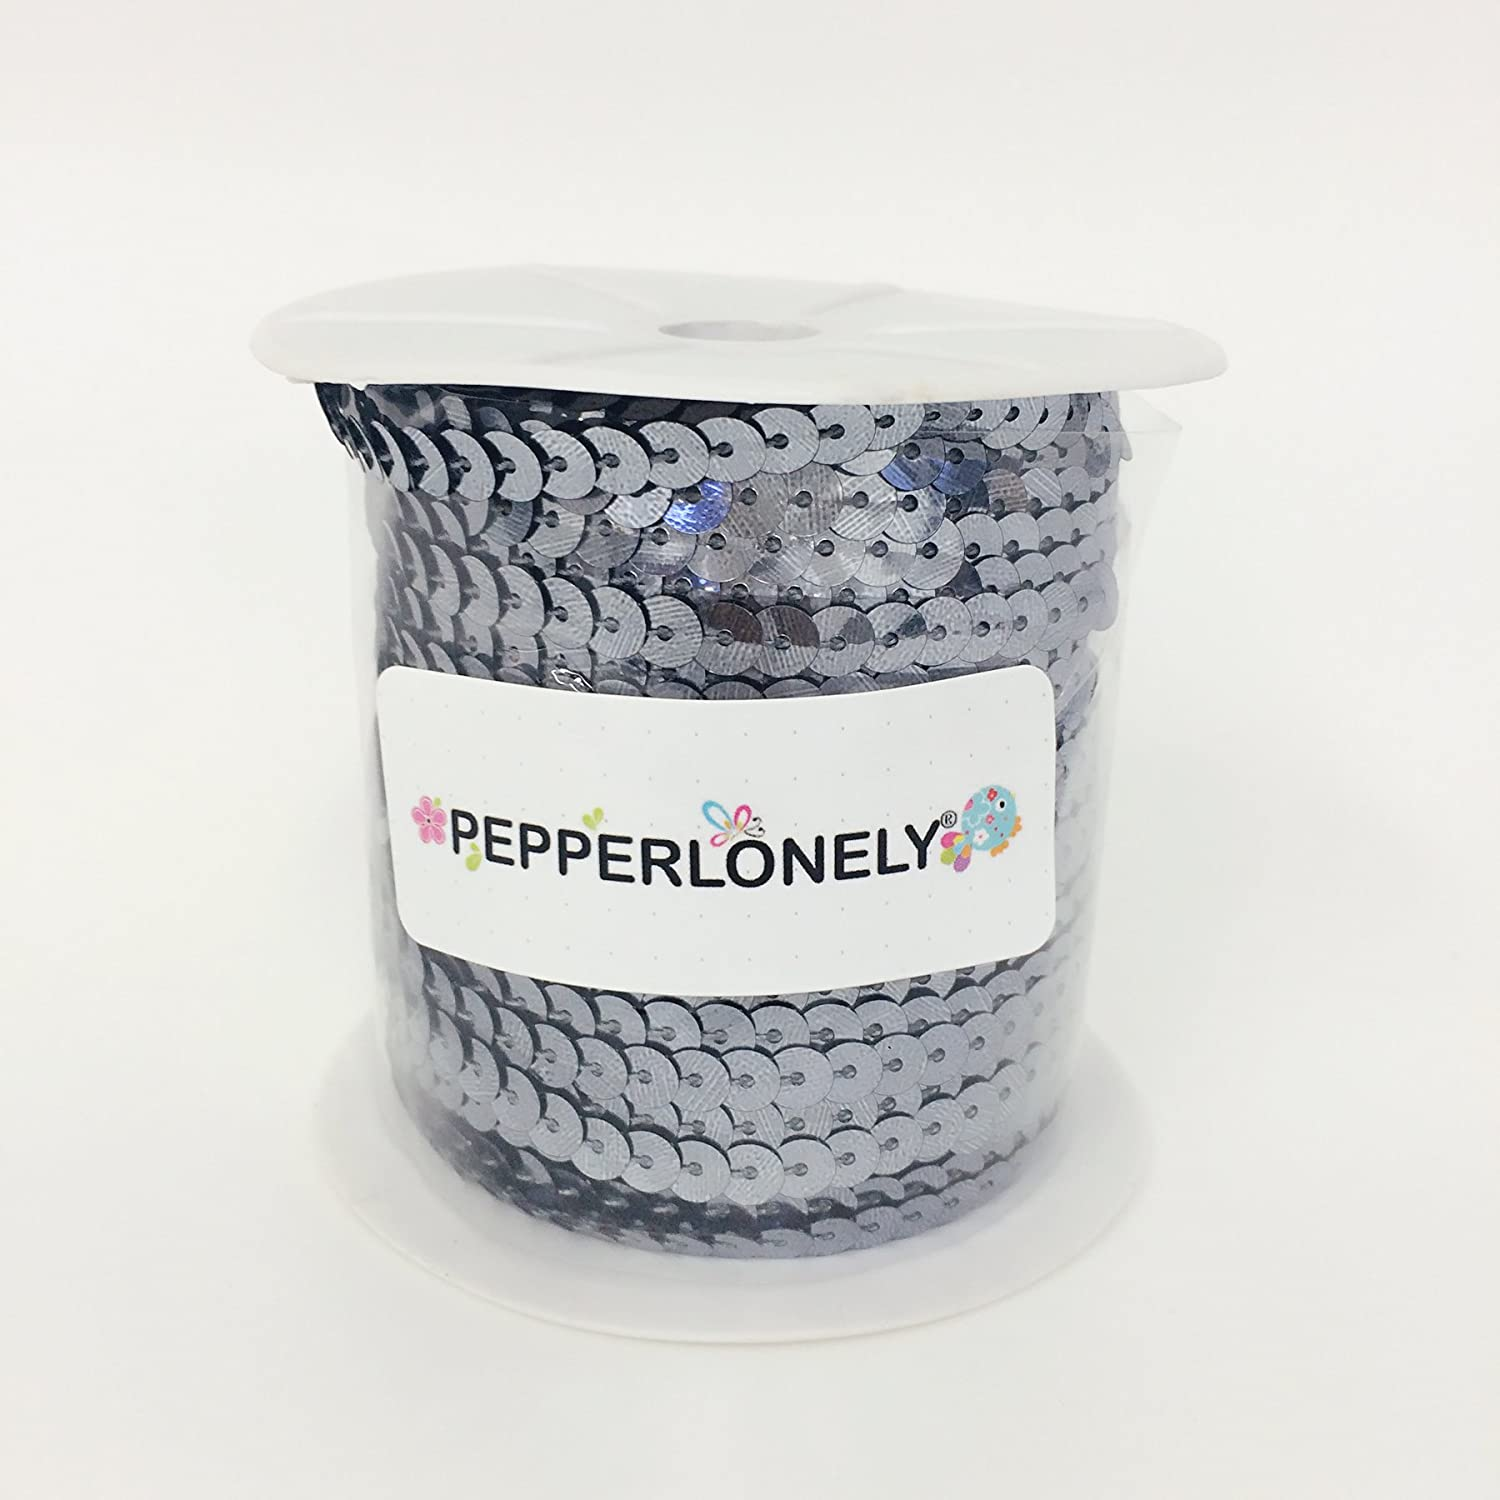 1//4 Inch PEPPERLONELY Brand 24 Rolls Mixed 24 Colors Flat Sequin Trim 6mm